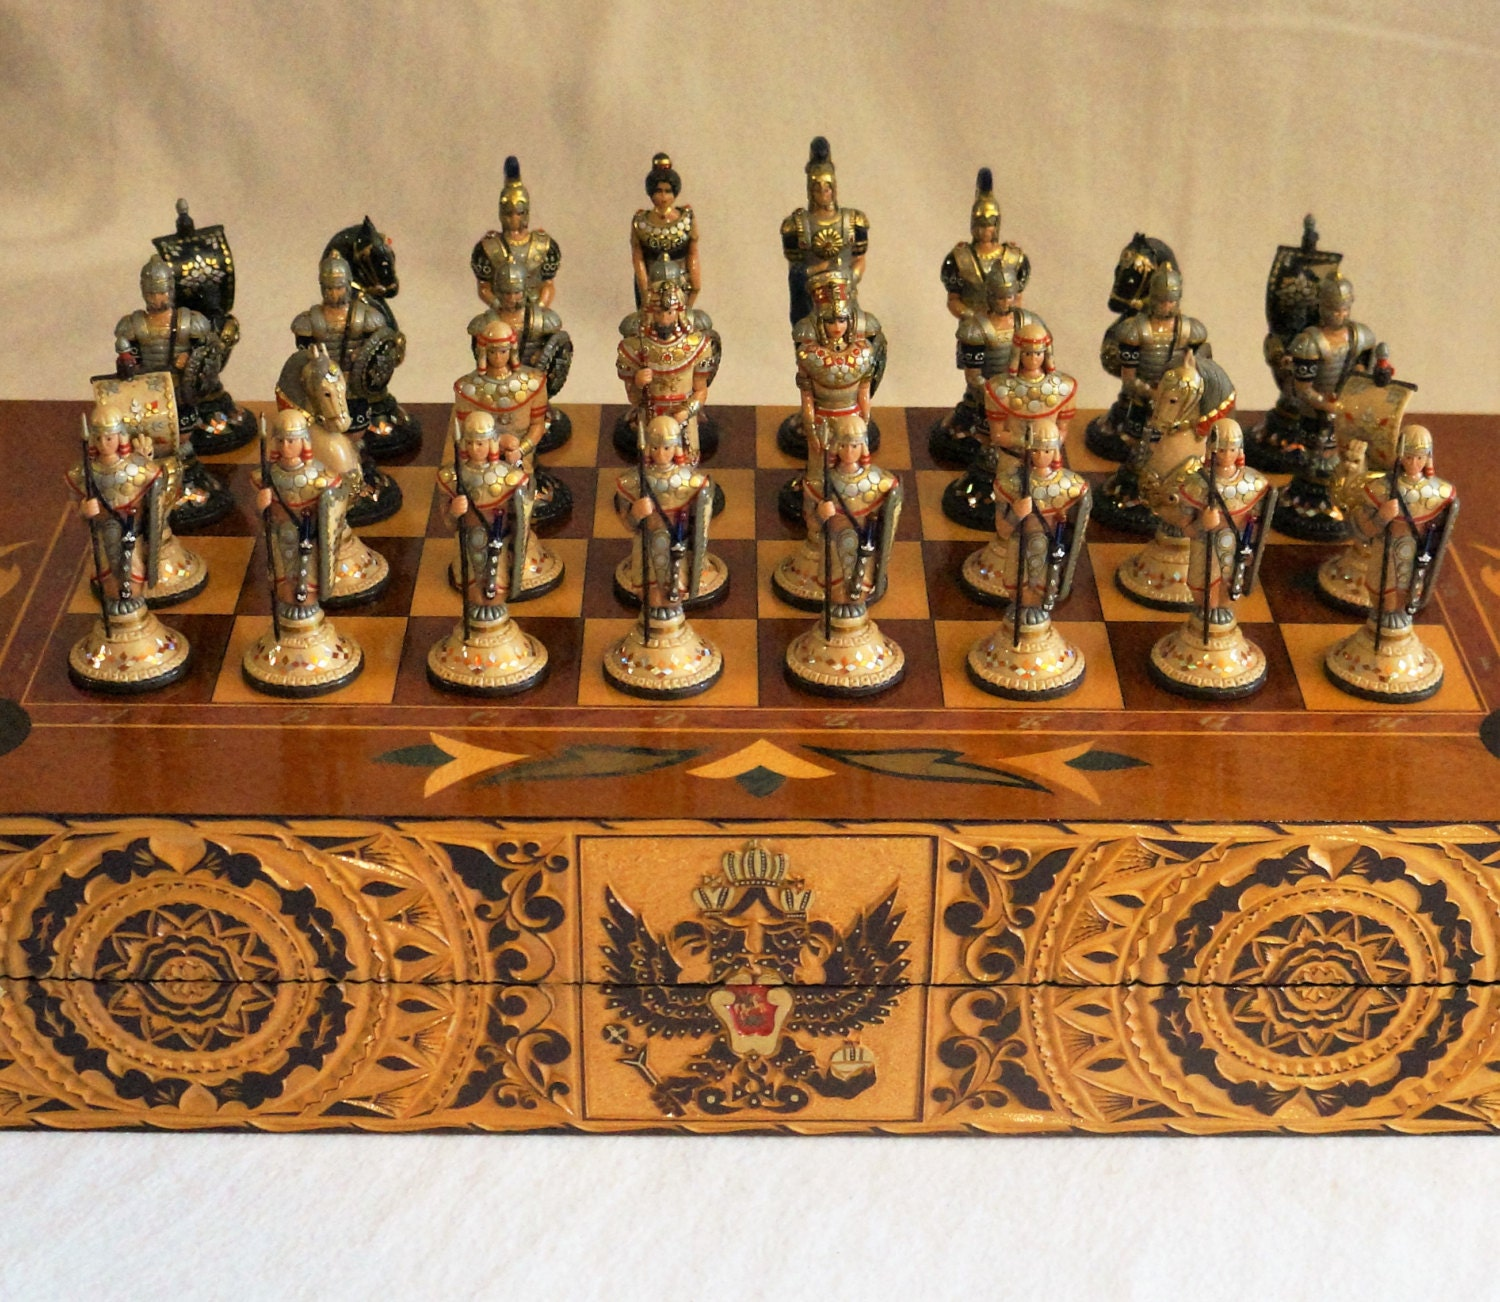 Unique Russian Chess Set By Styleofrussia On Etsy